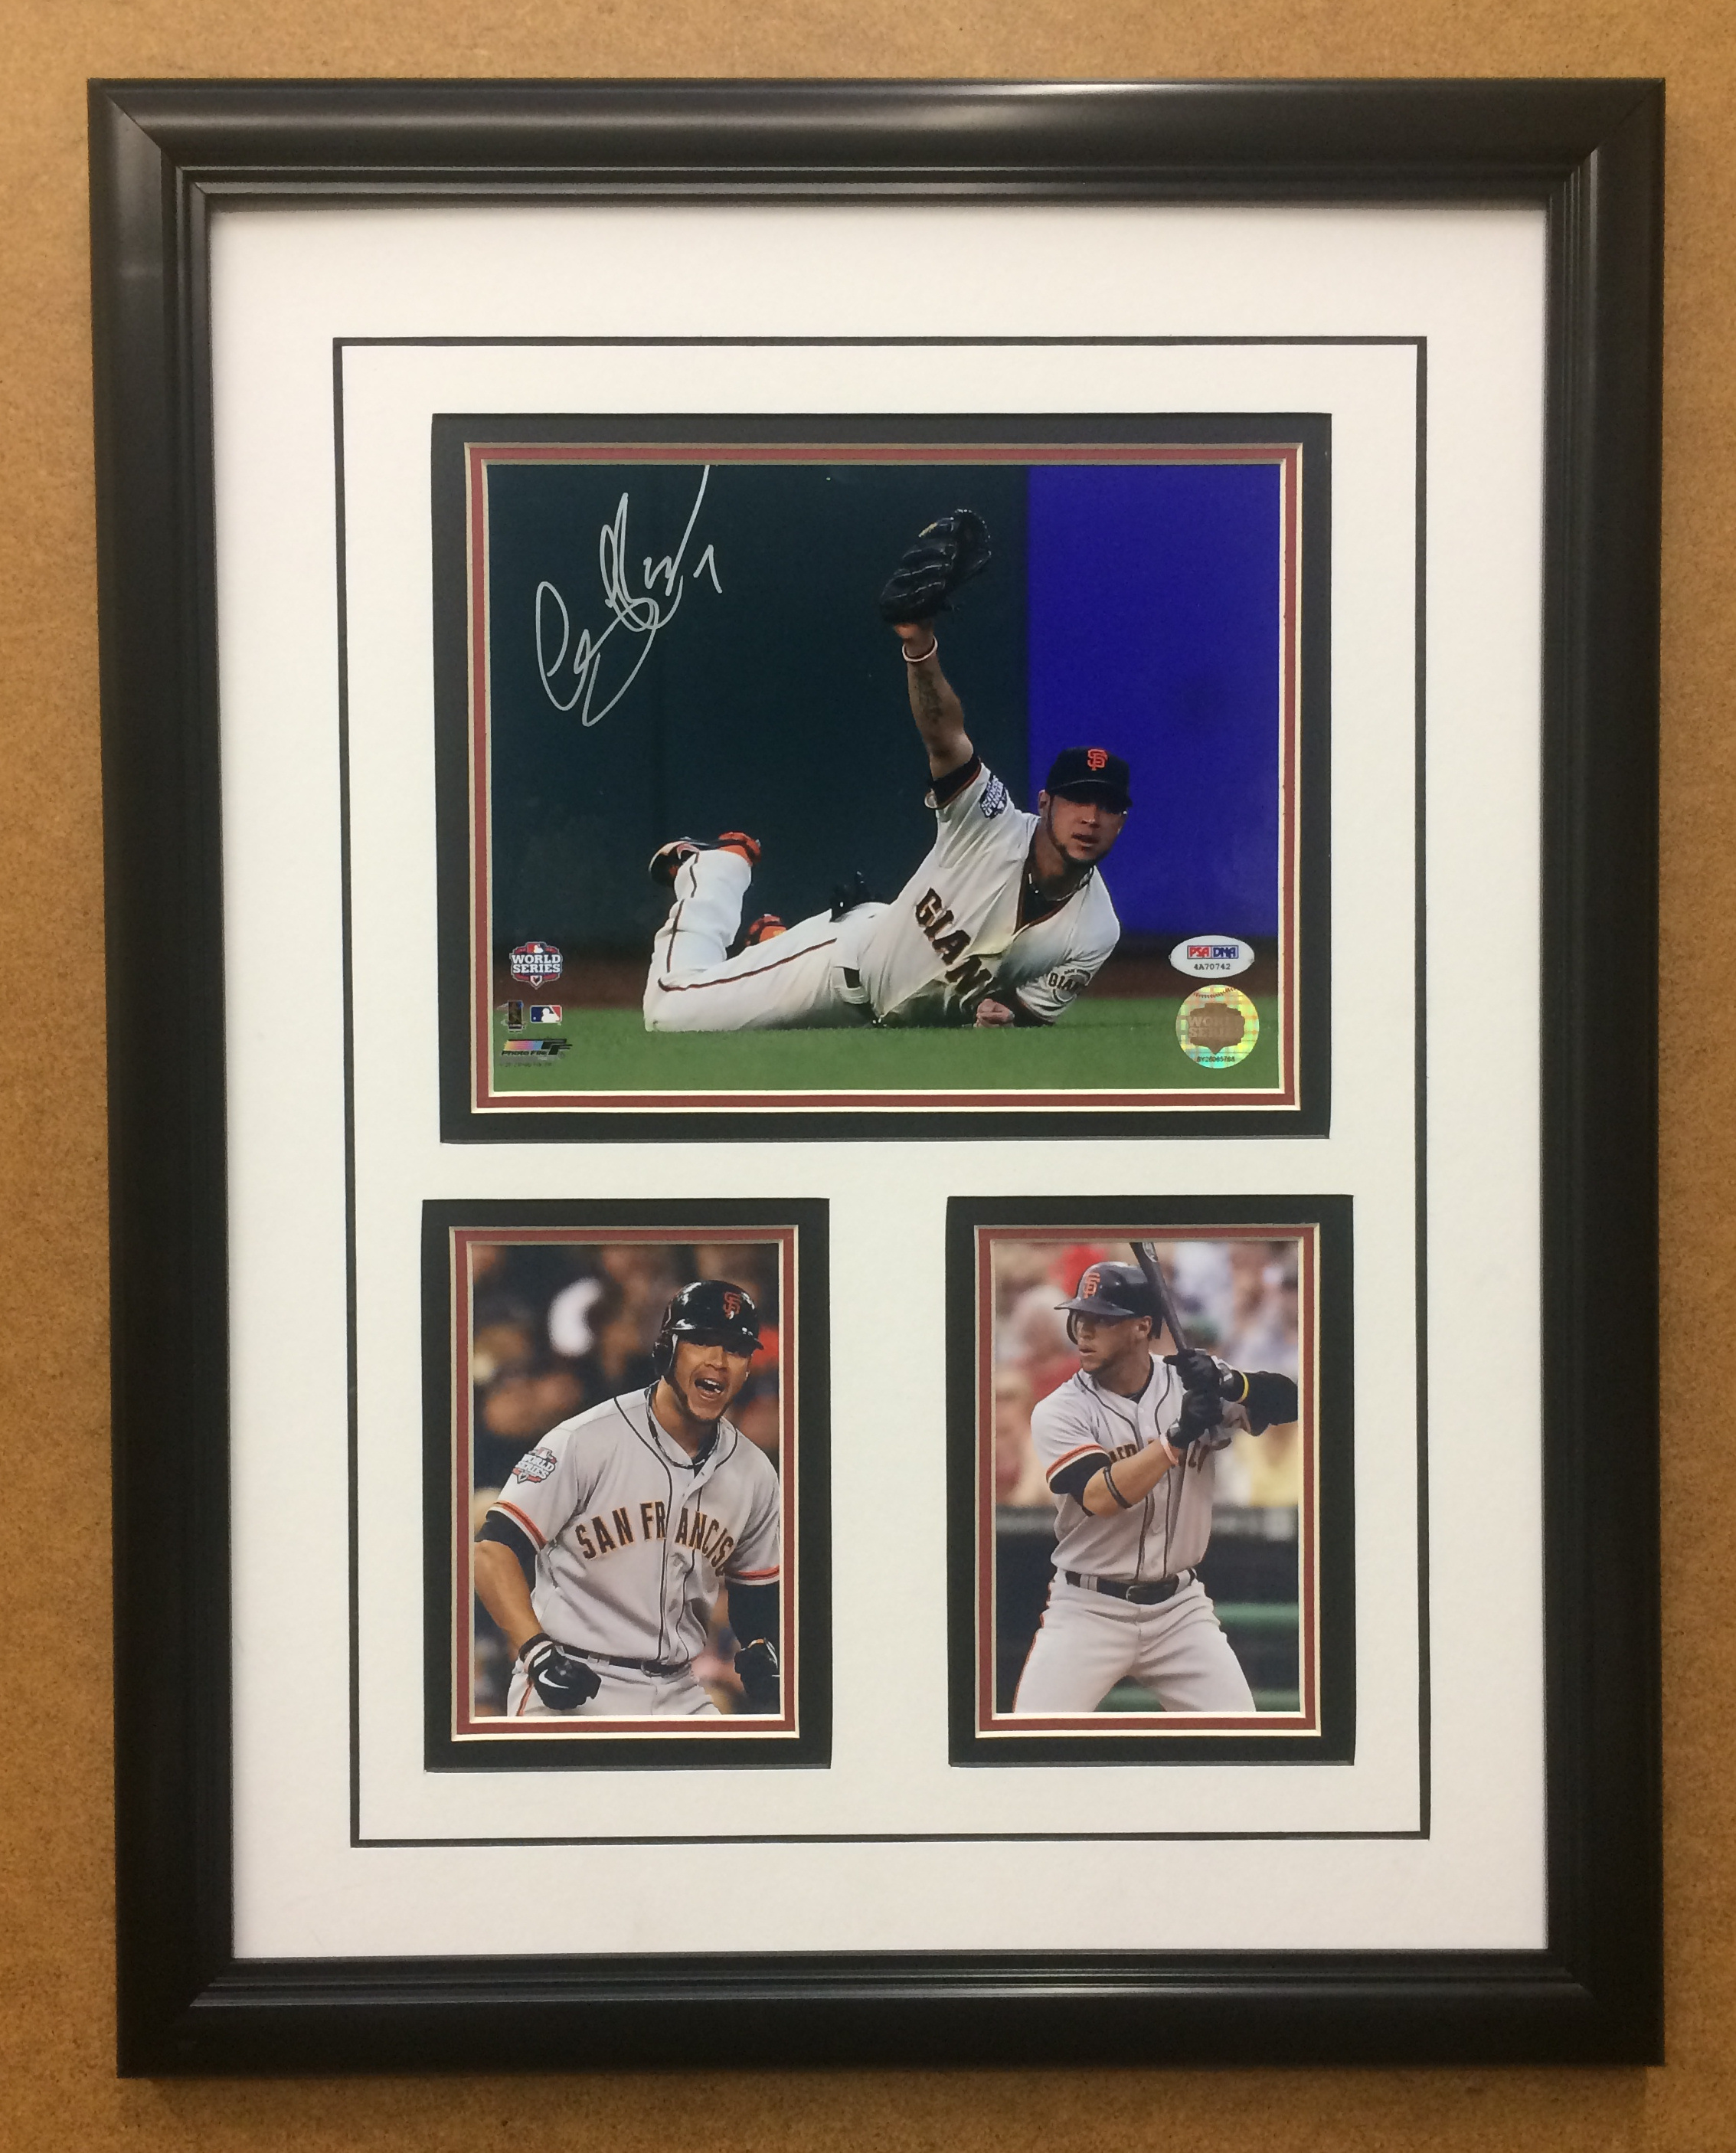 Gregor Blanco S.F. Giants Hand-Signed 8x10 Commemorative